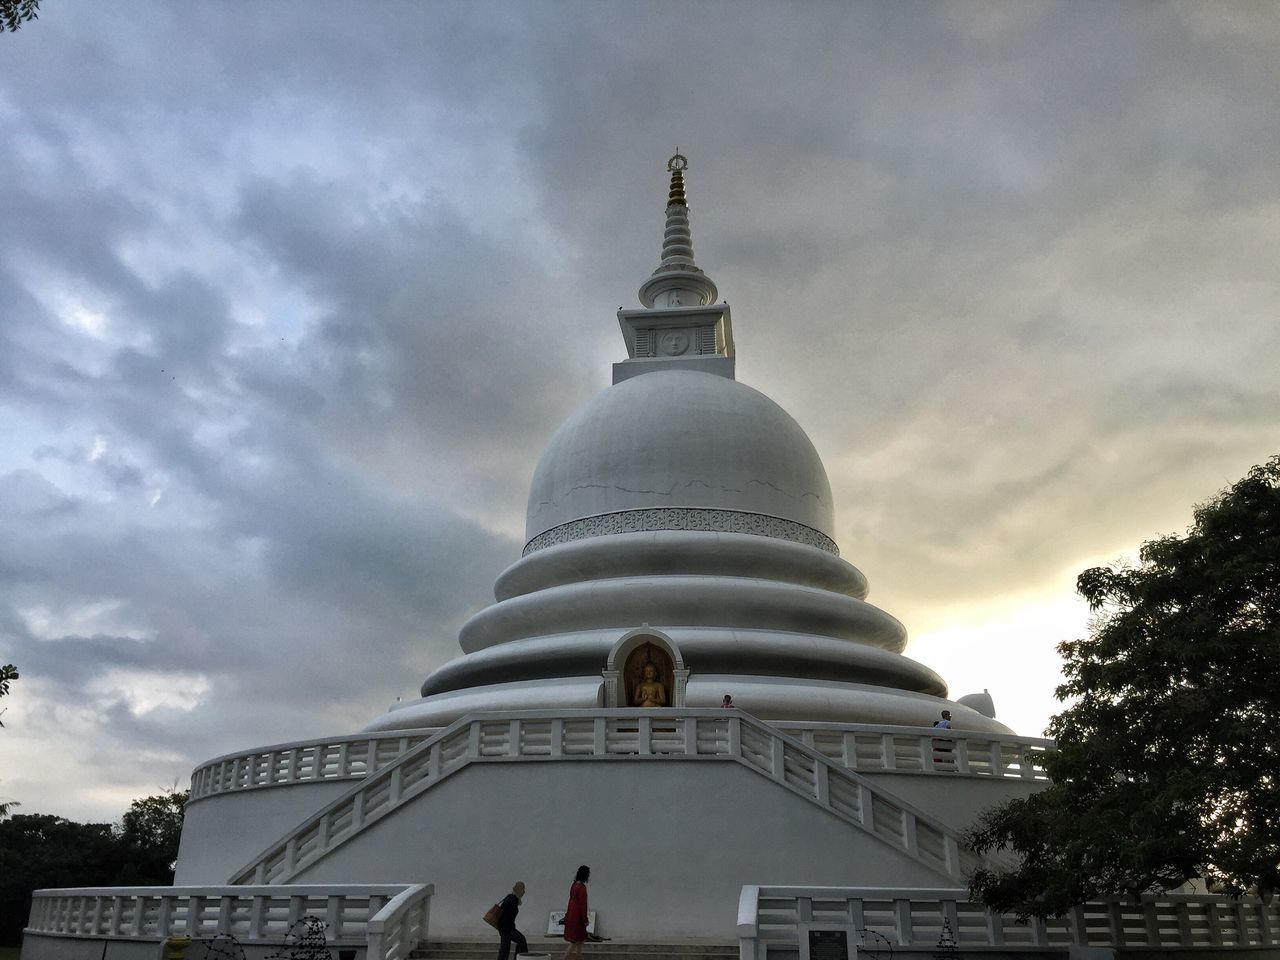 Peace Pagoda - a symbol of peace for everyone from all wakes of life, nomatter the religion, race or ideology Architecture Built Structure Sky Cloud - Sky Building Exterior Religion Spirituality Travel Destinations Place Of Worship Low Angle View Outdoors Day Tree Tranquil Scene Waterfront Sri Lanka Unawatuna Pagoda Pagoda Temple